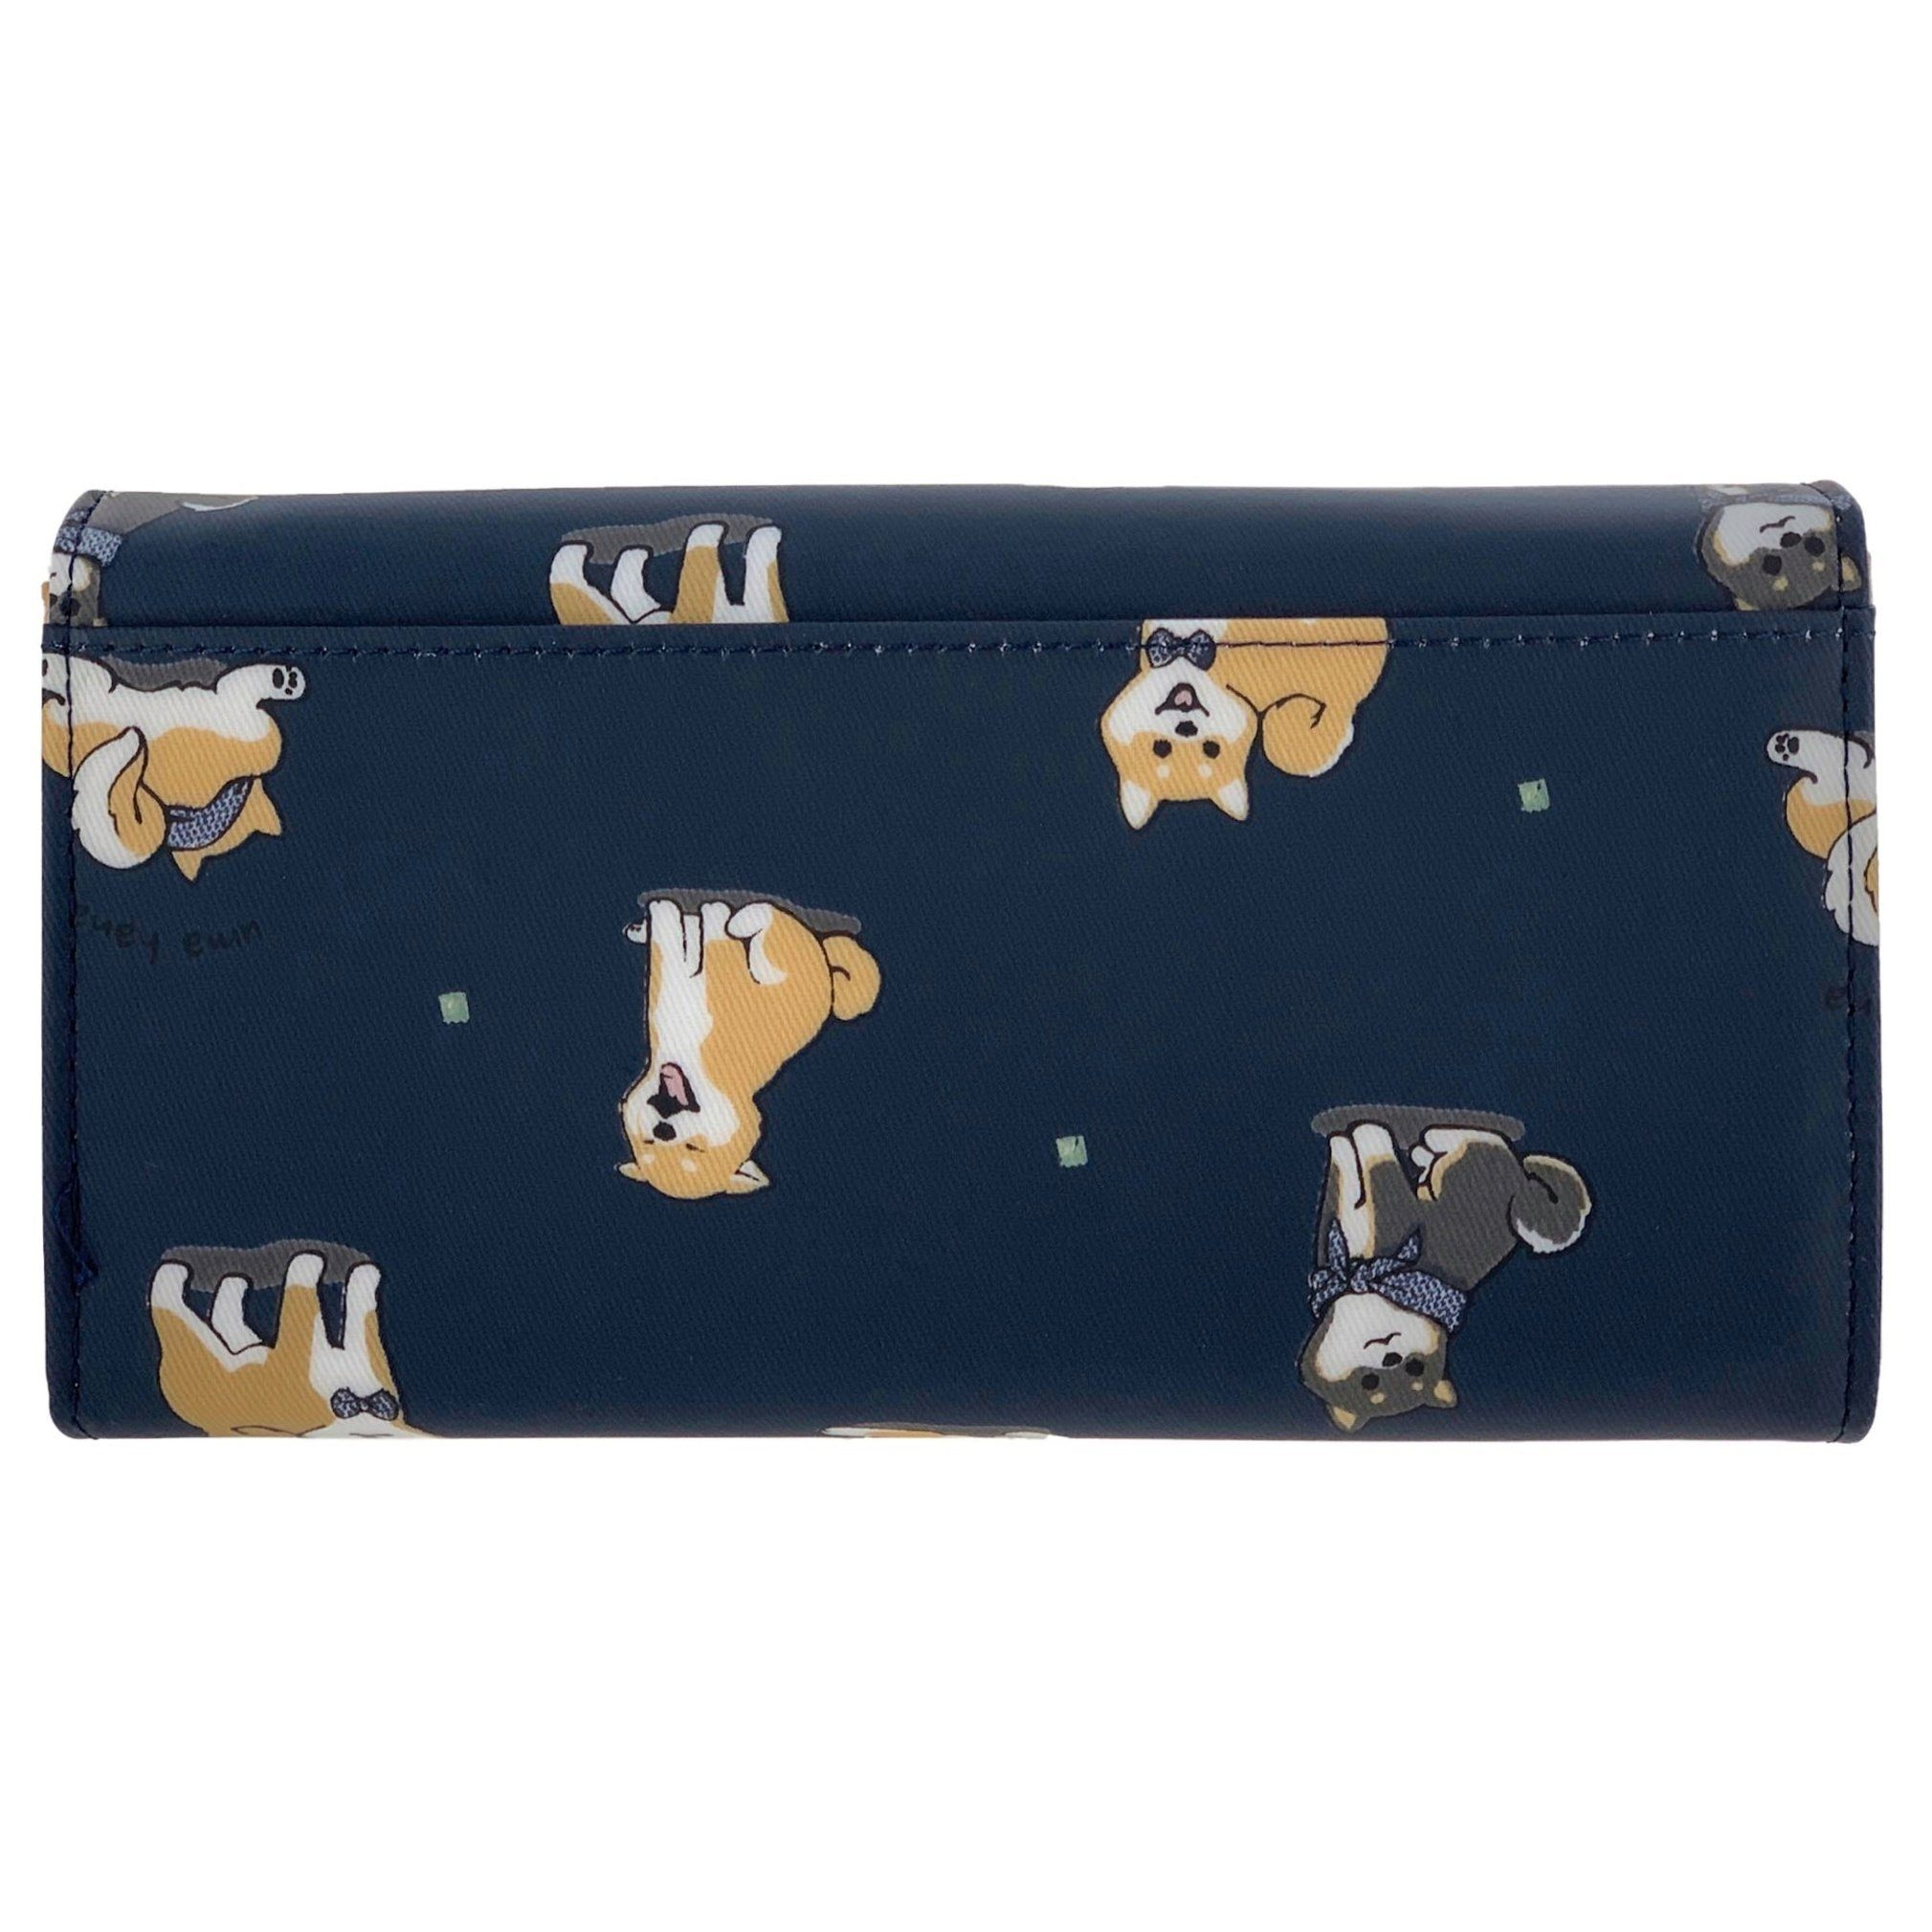 Midnight Blue Shiba Inu Multifunctional Wallet Wallet Tworgis